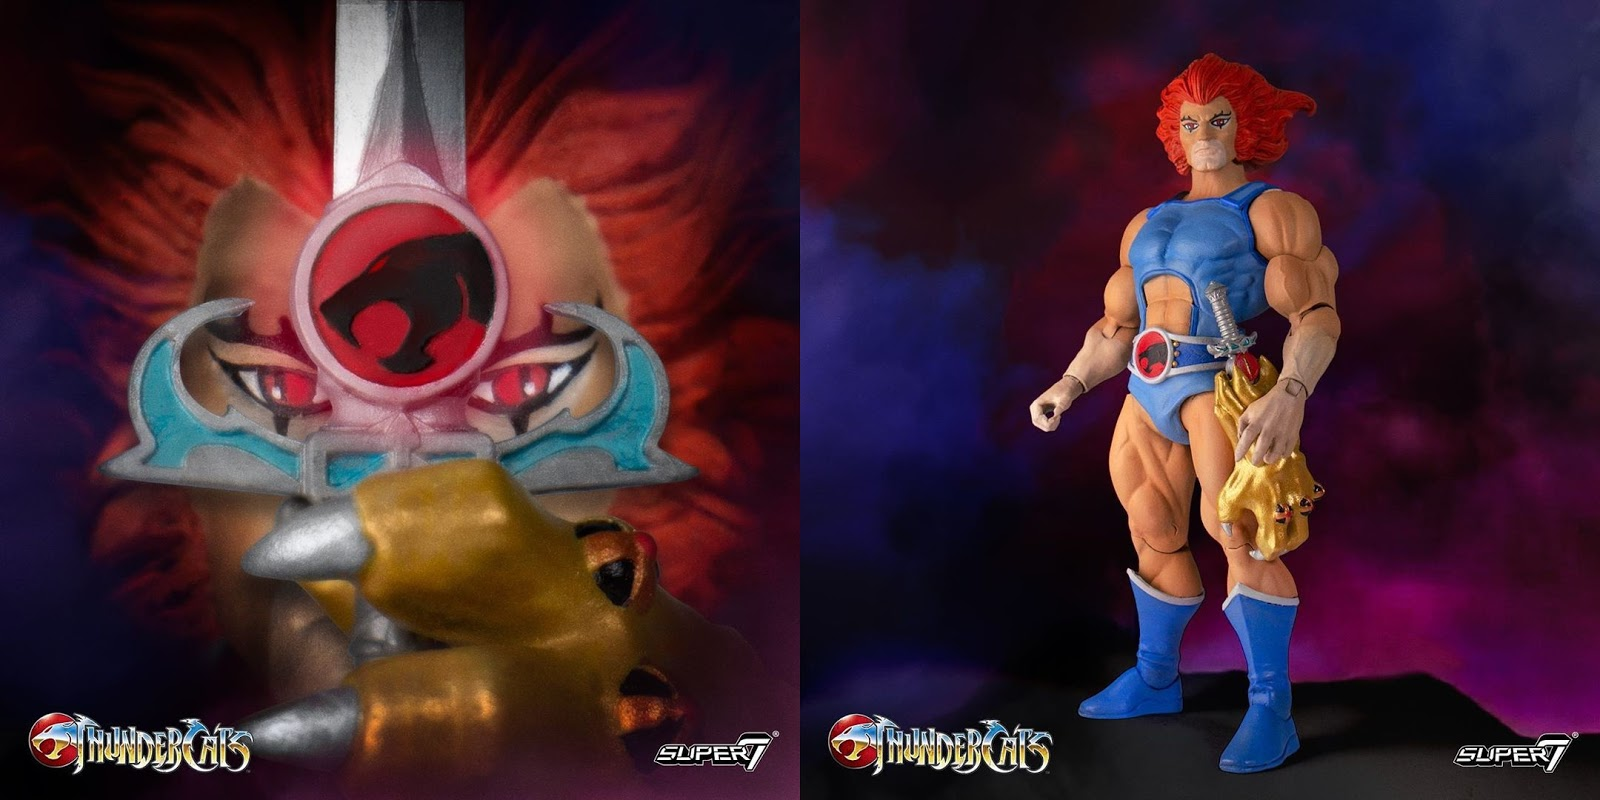 Thundercats 2017 SDCC Excl MUMM-RA IN HAND GLOWS IN DARK The Loyal Subjects